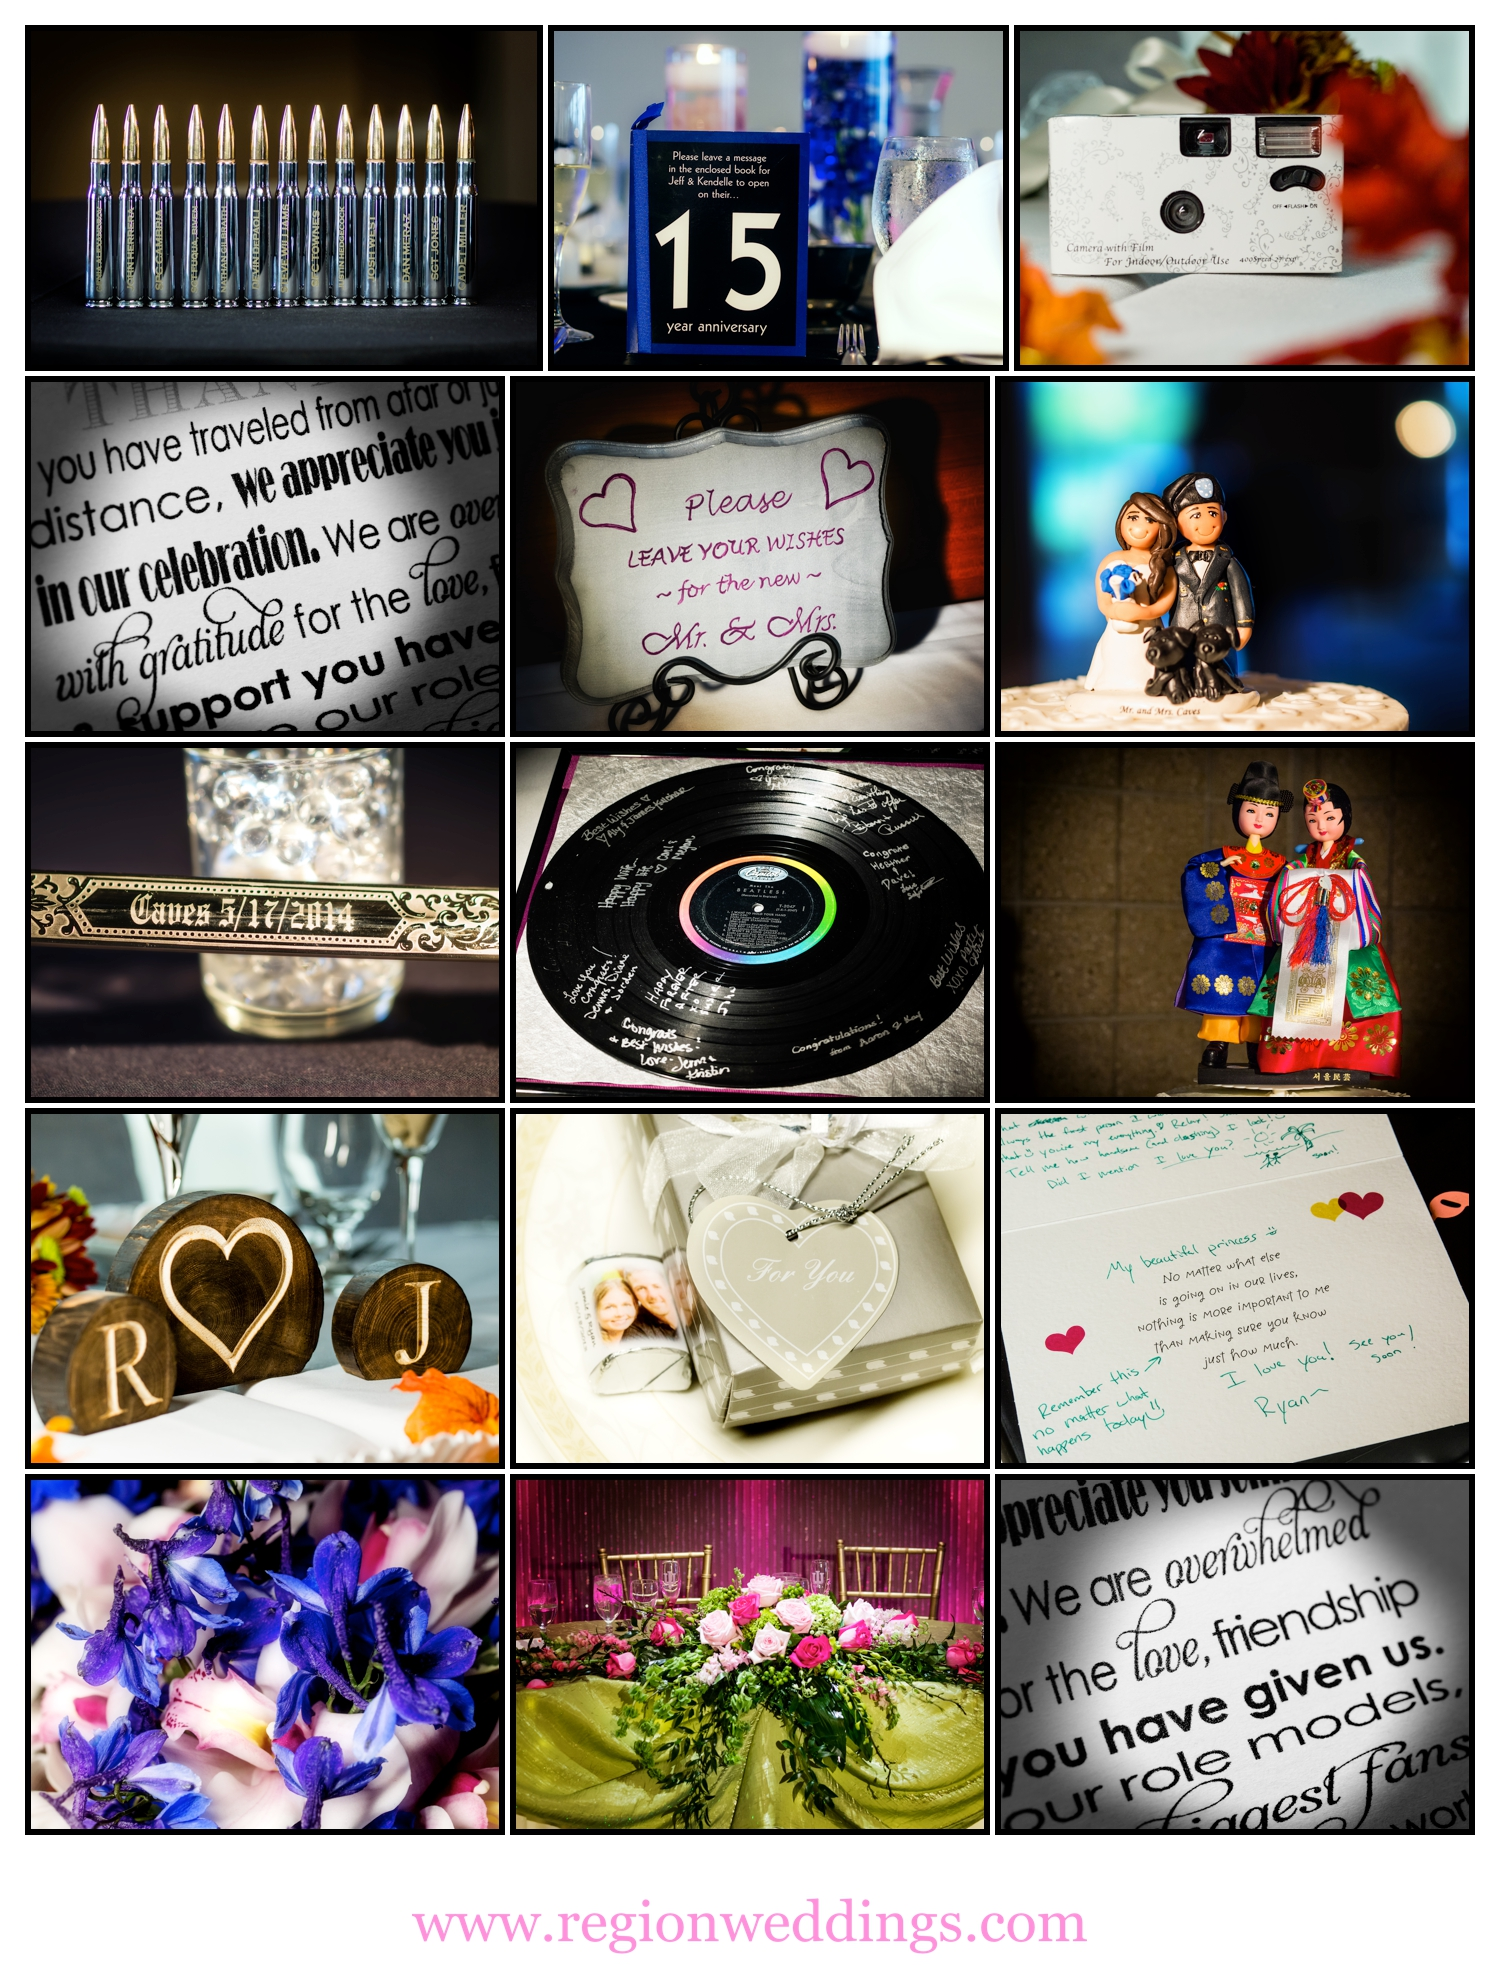 A photo collage of wedding decorations